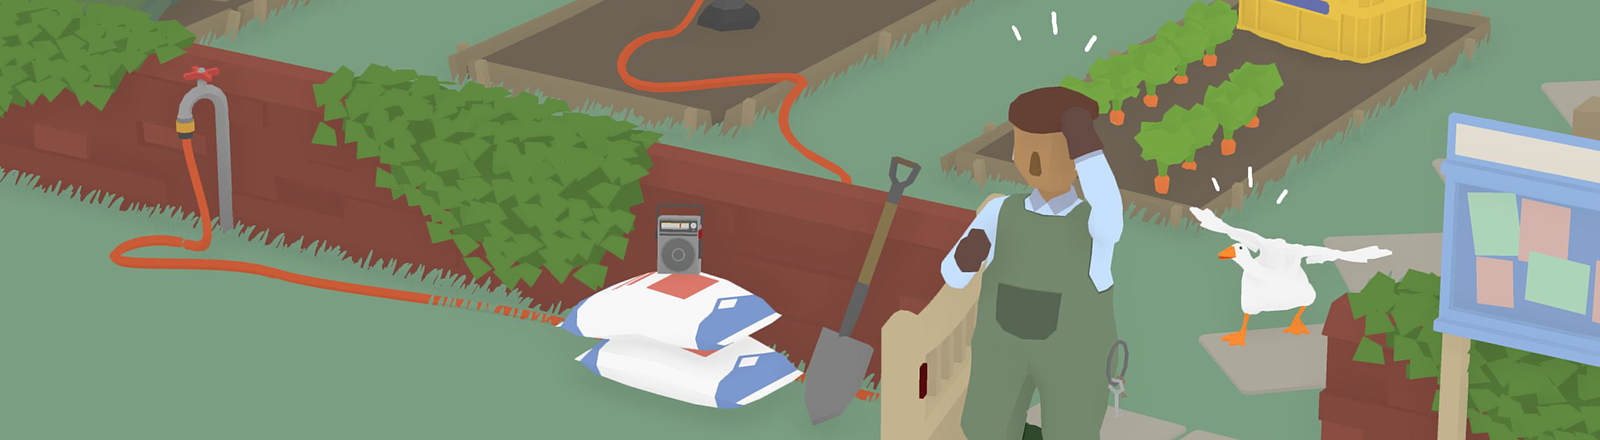 Screenshot des Indie-Games Untitled Goose Game